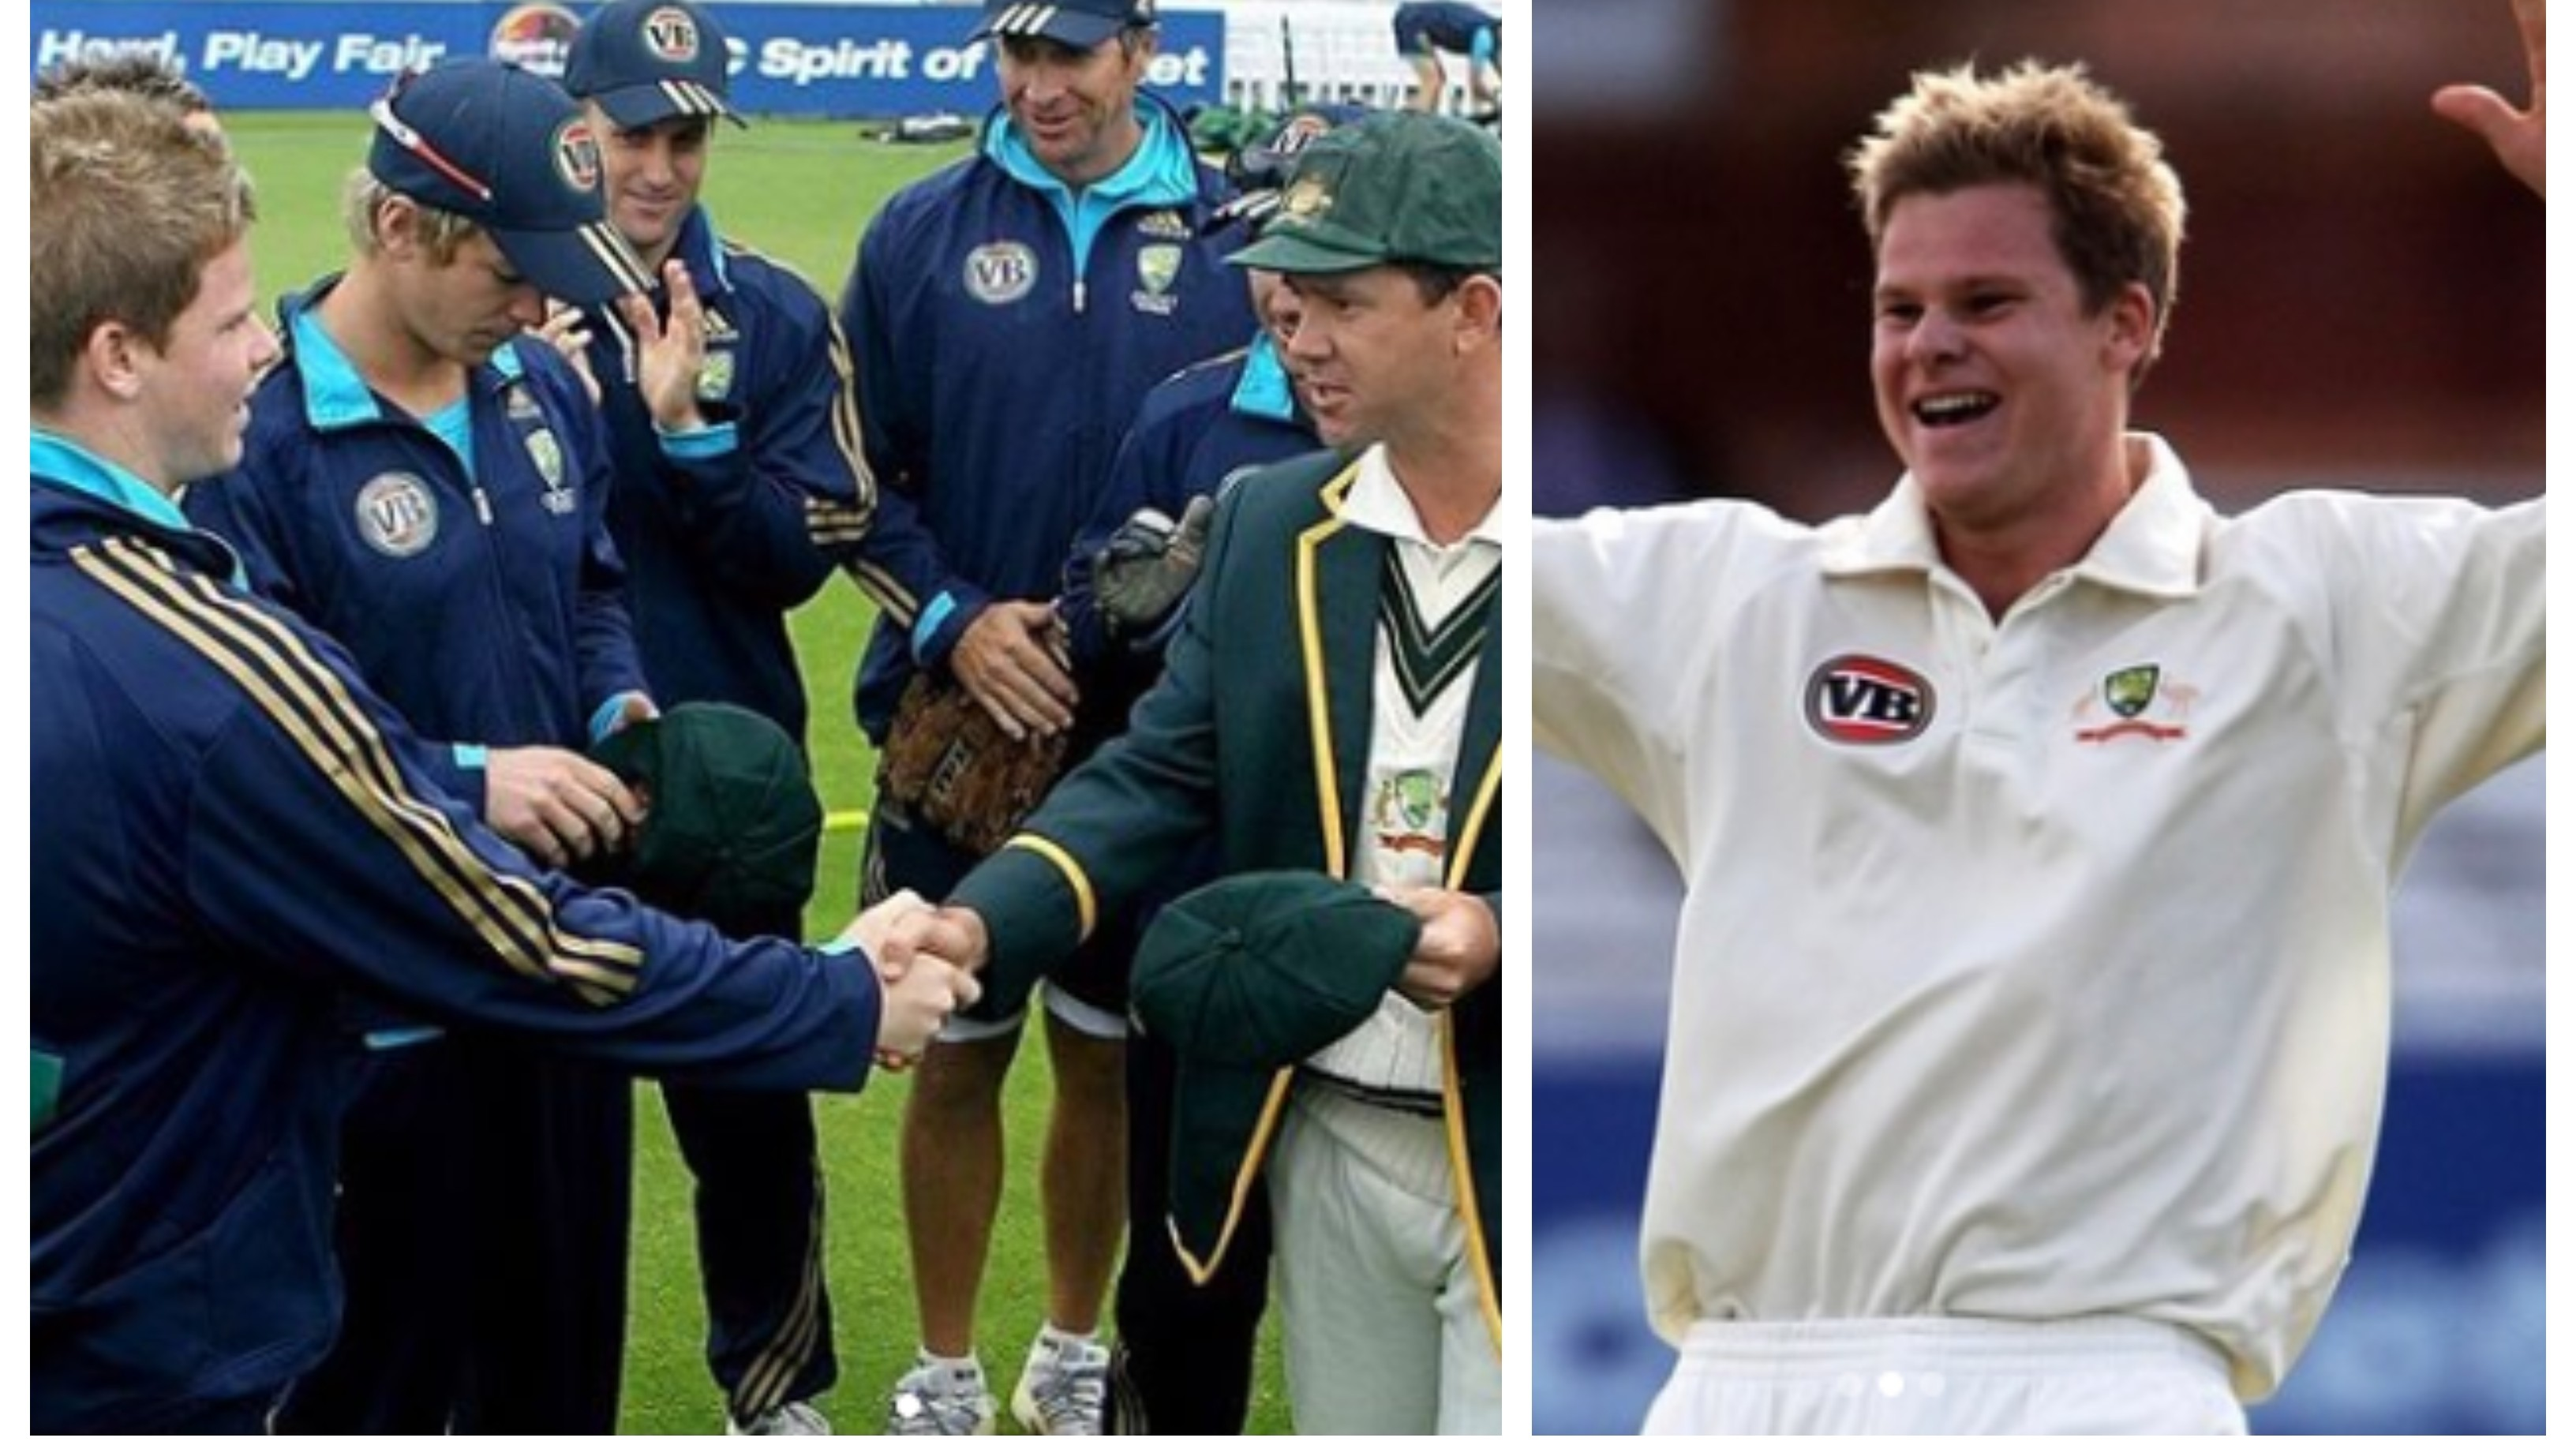 Steve Smith shares a heartfelt post on completing 10 years in Test cricket